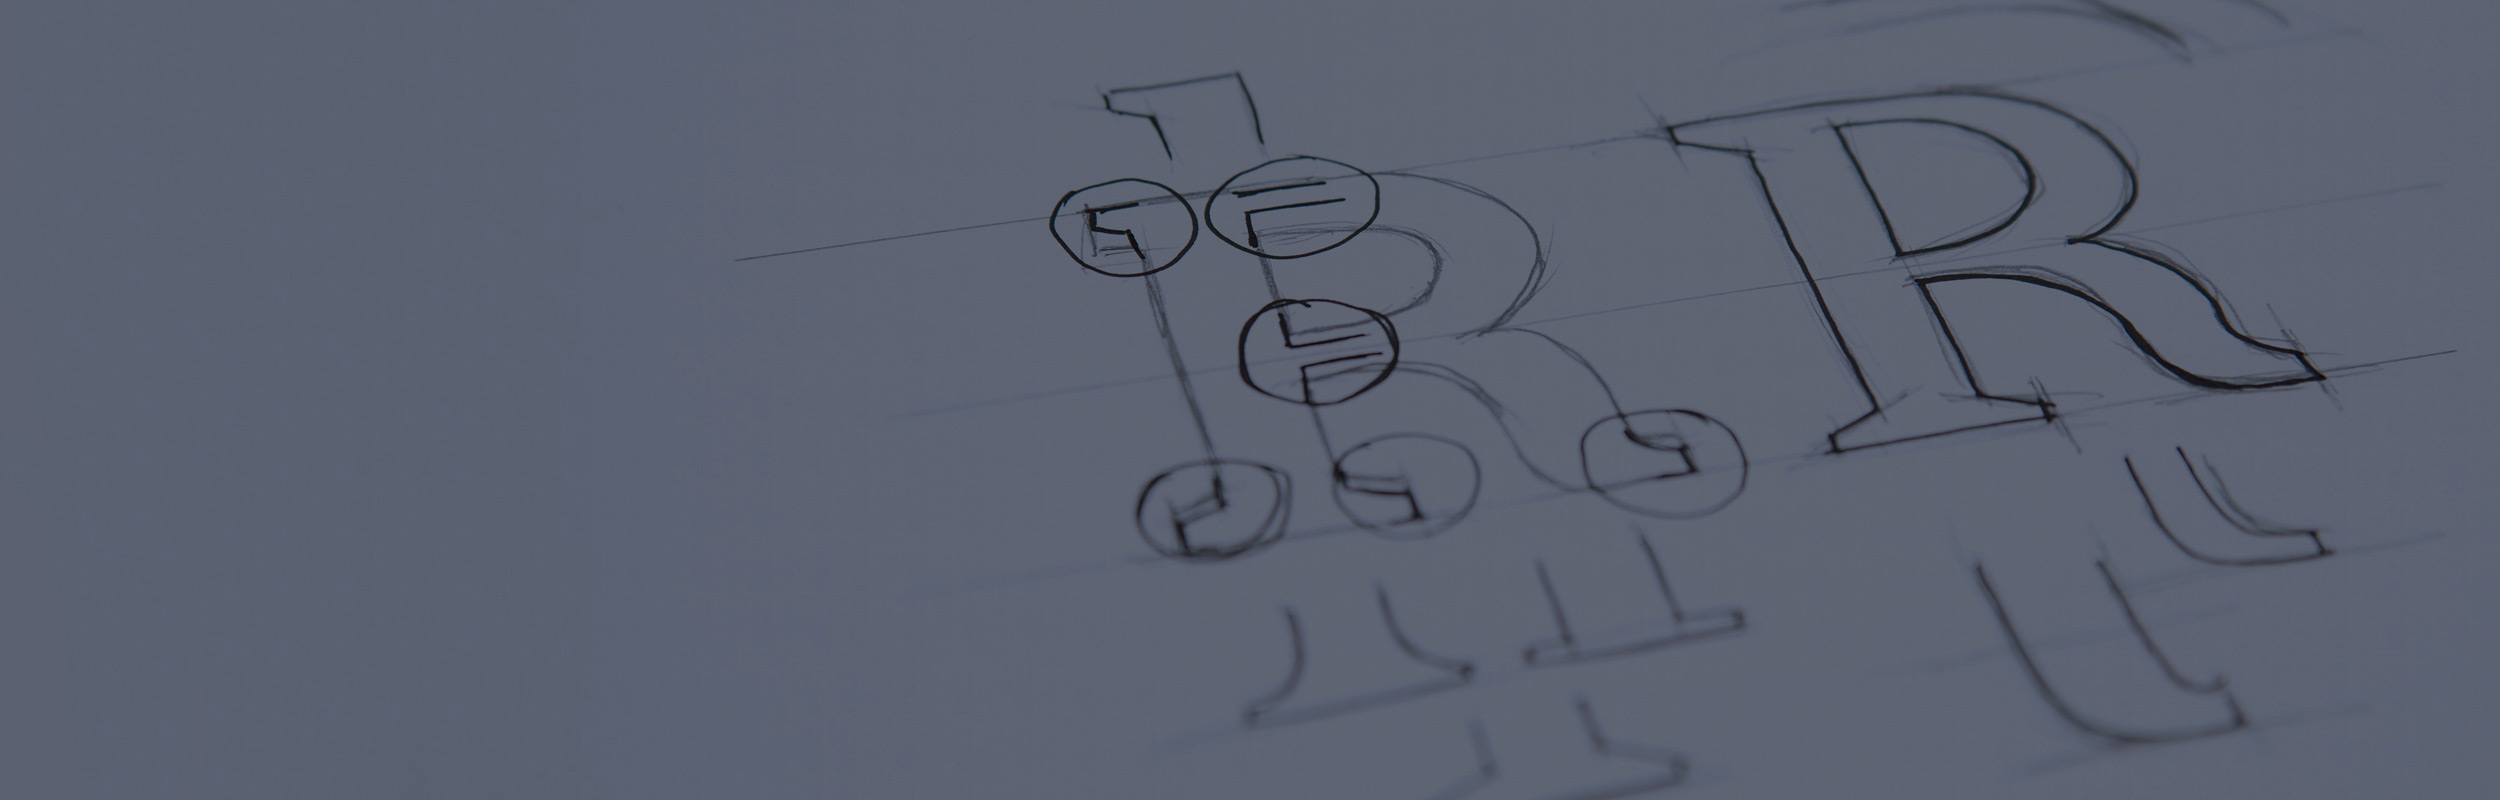 Roboto Making-of schriftdetails